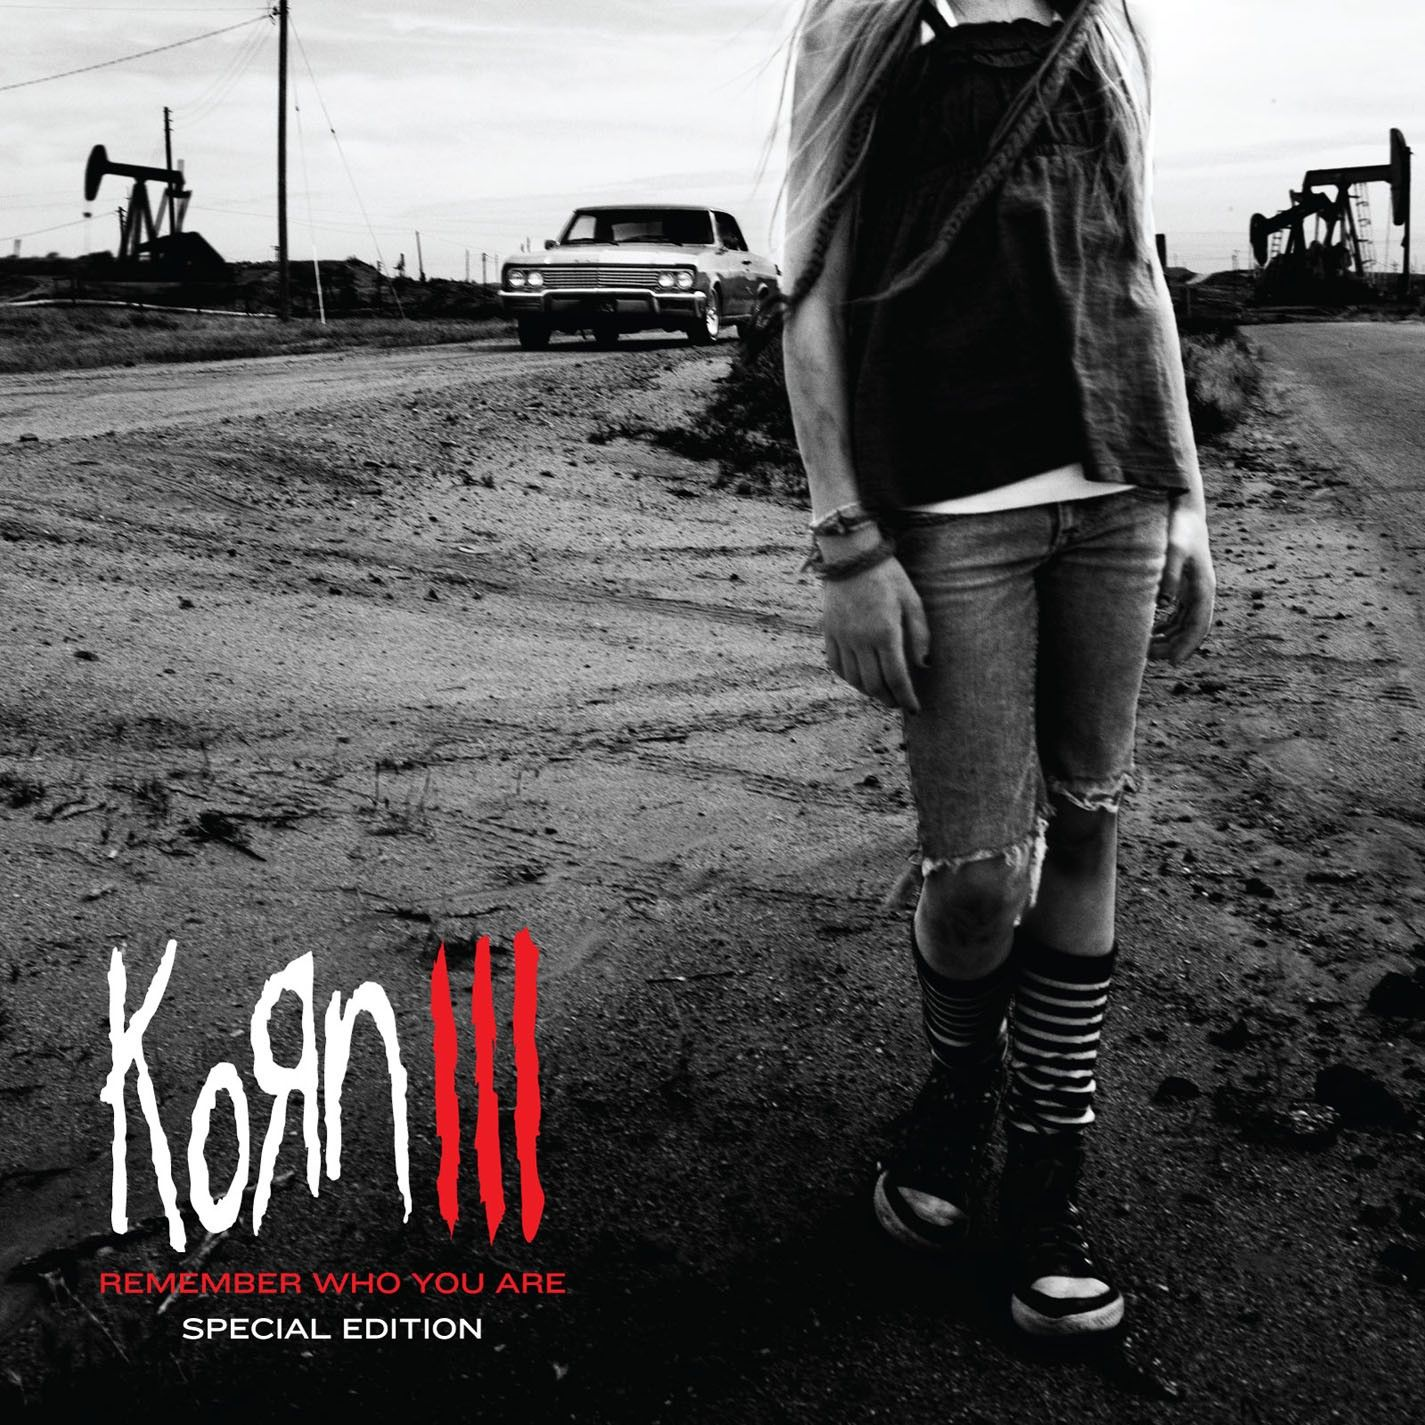 Korn - Korn III - Remember Who You Are album cover